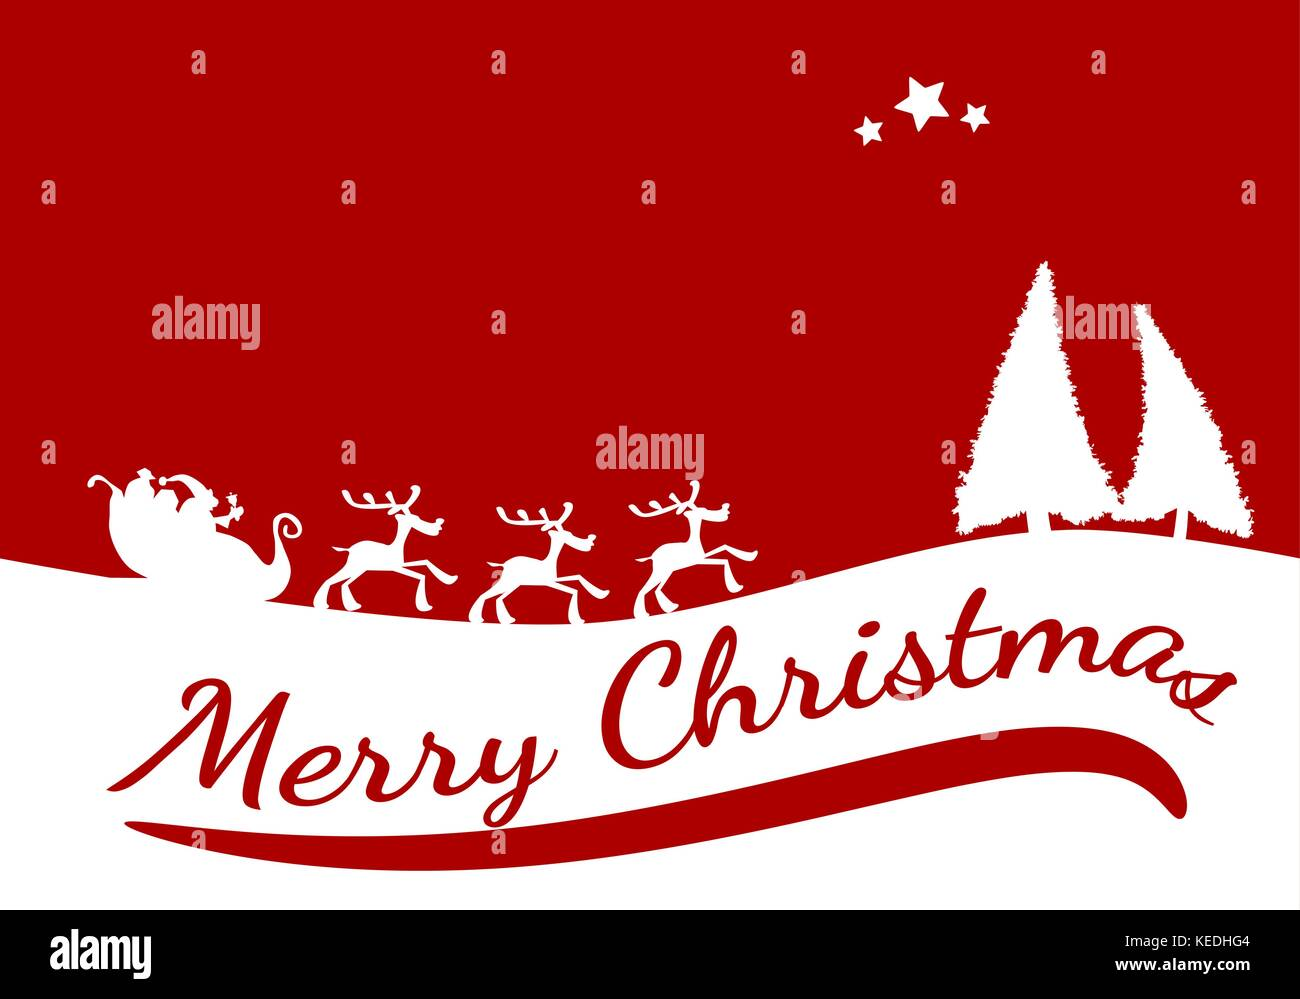 Red Christmas Card Background With The Words Merry Christmas Vector